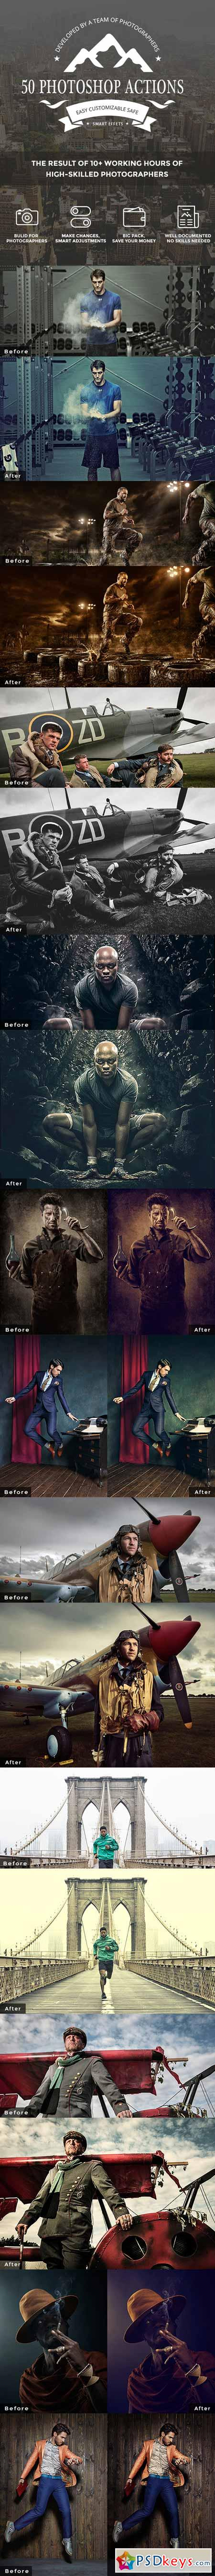 50 Photoshop Actions 11324570